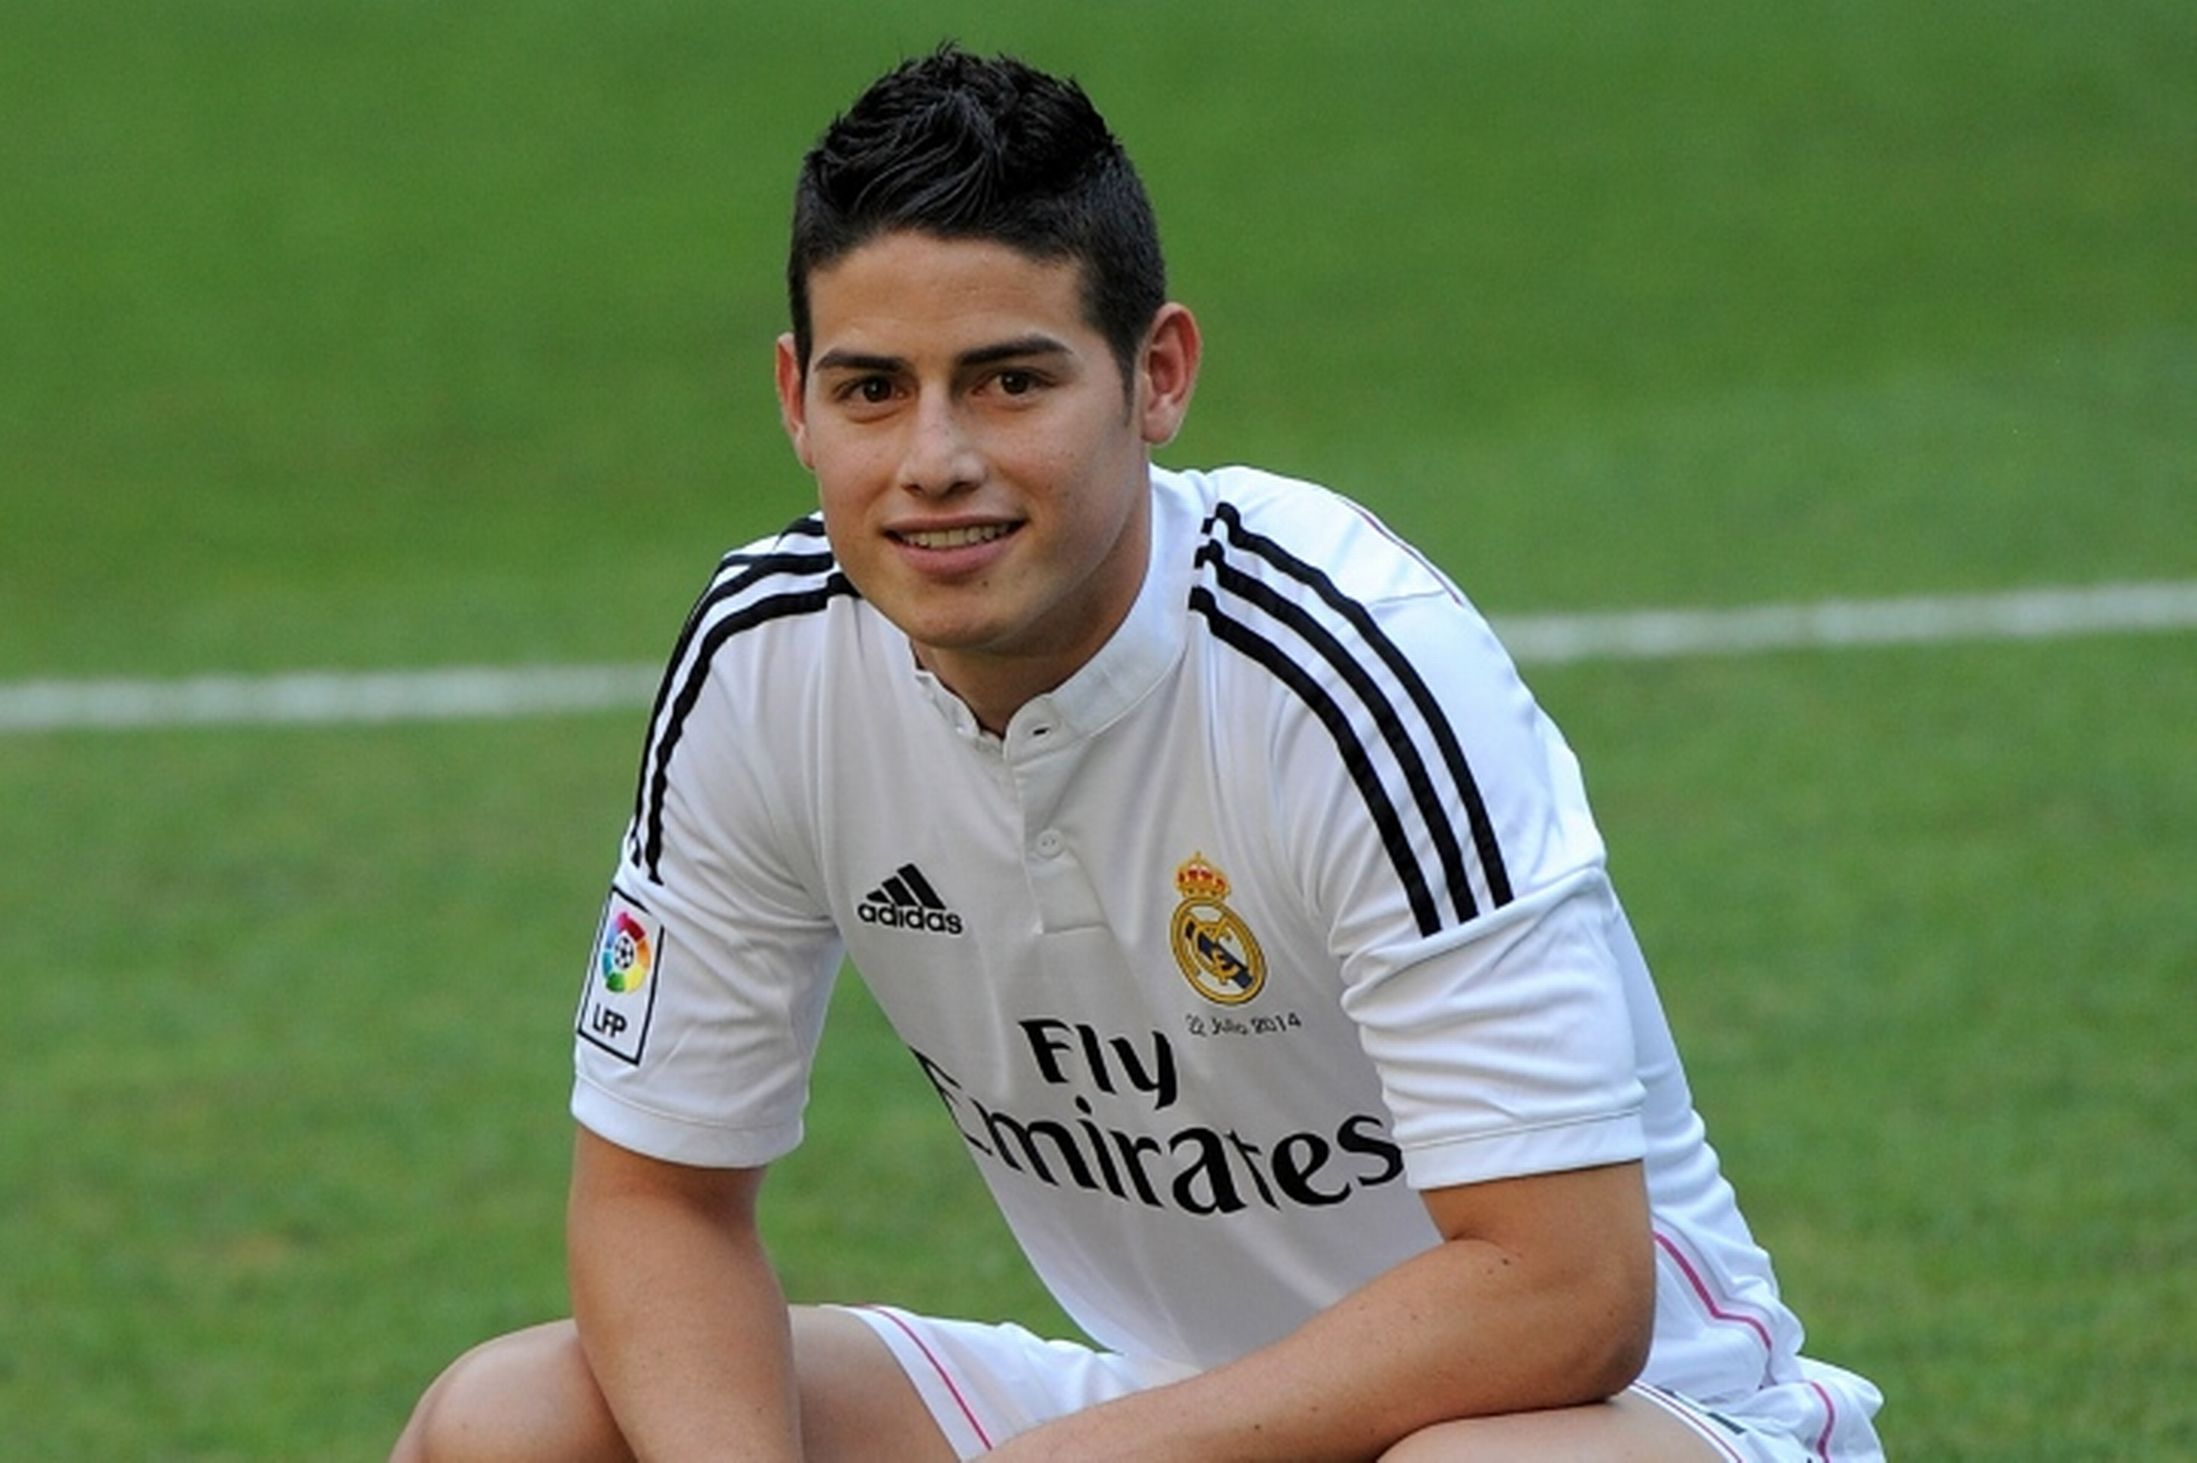 ¿En cuántos equipos ha estado James antes de fichar por el Madrid?